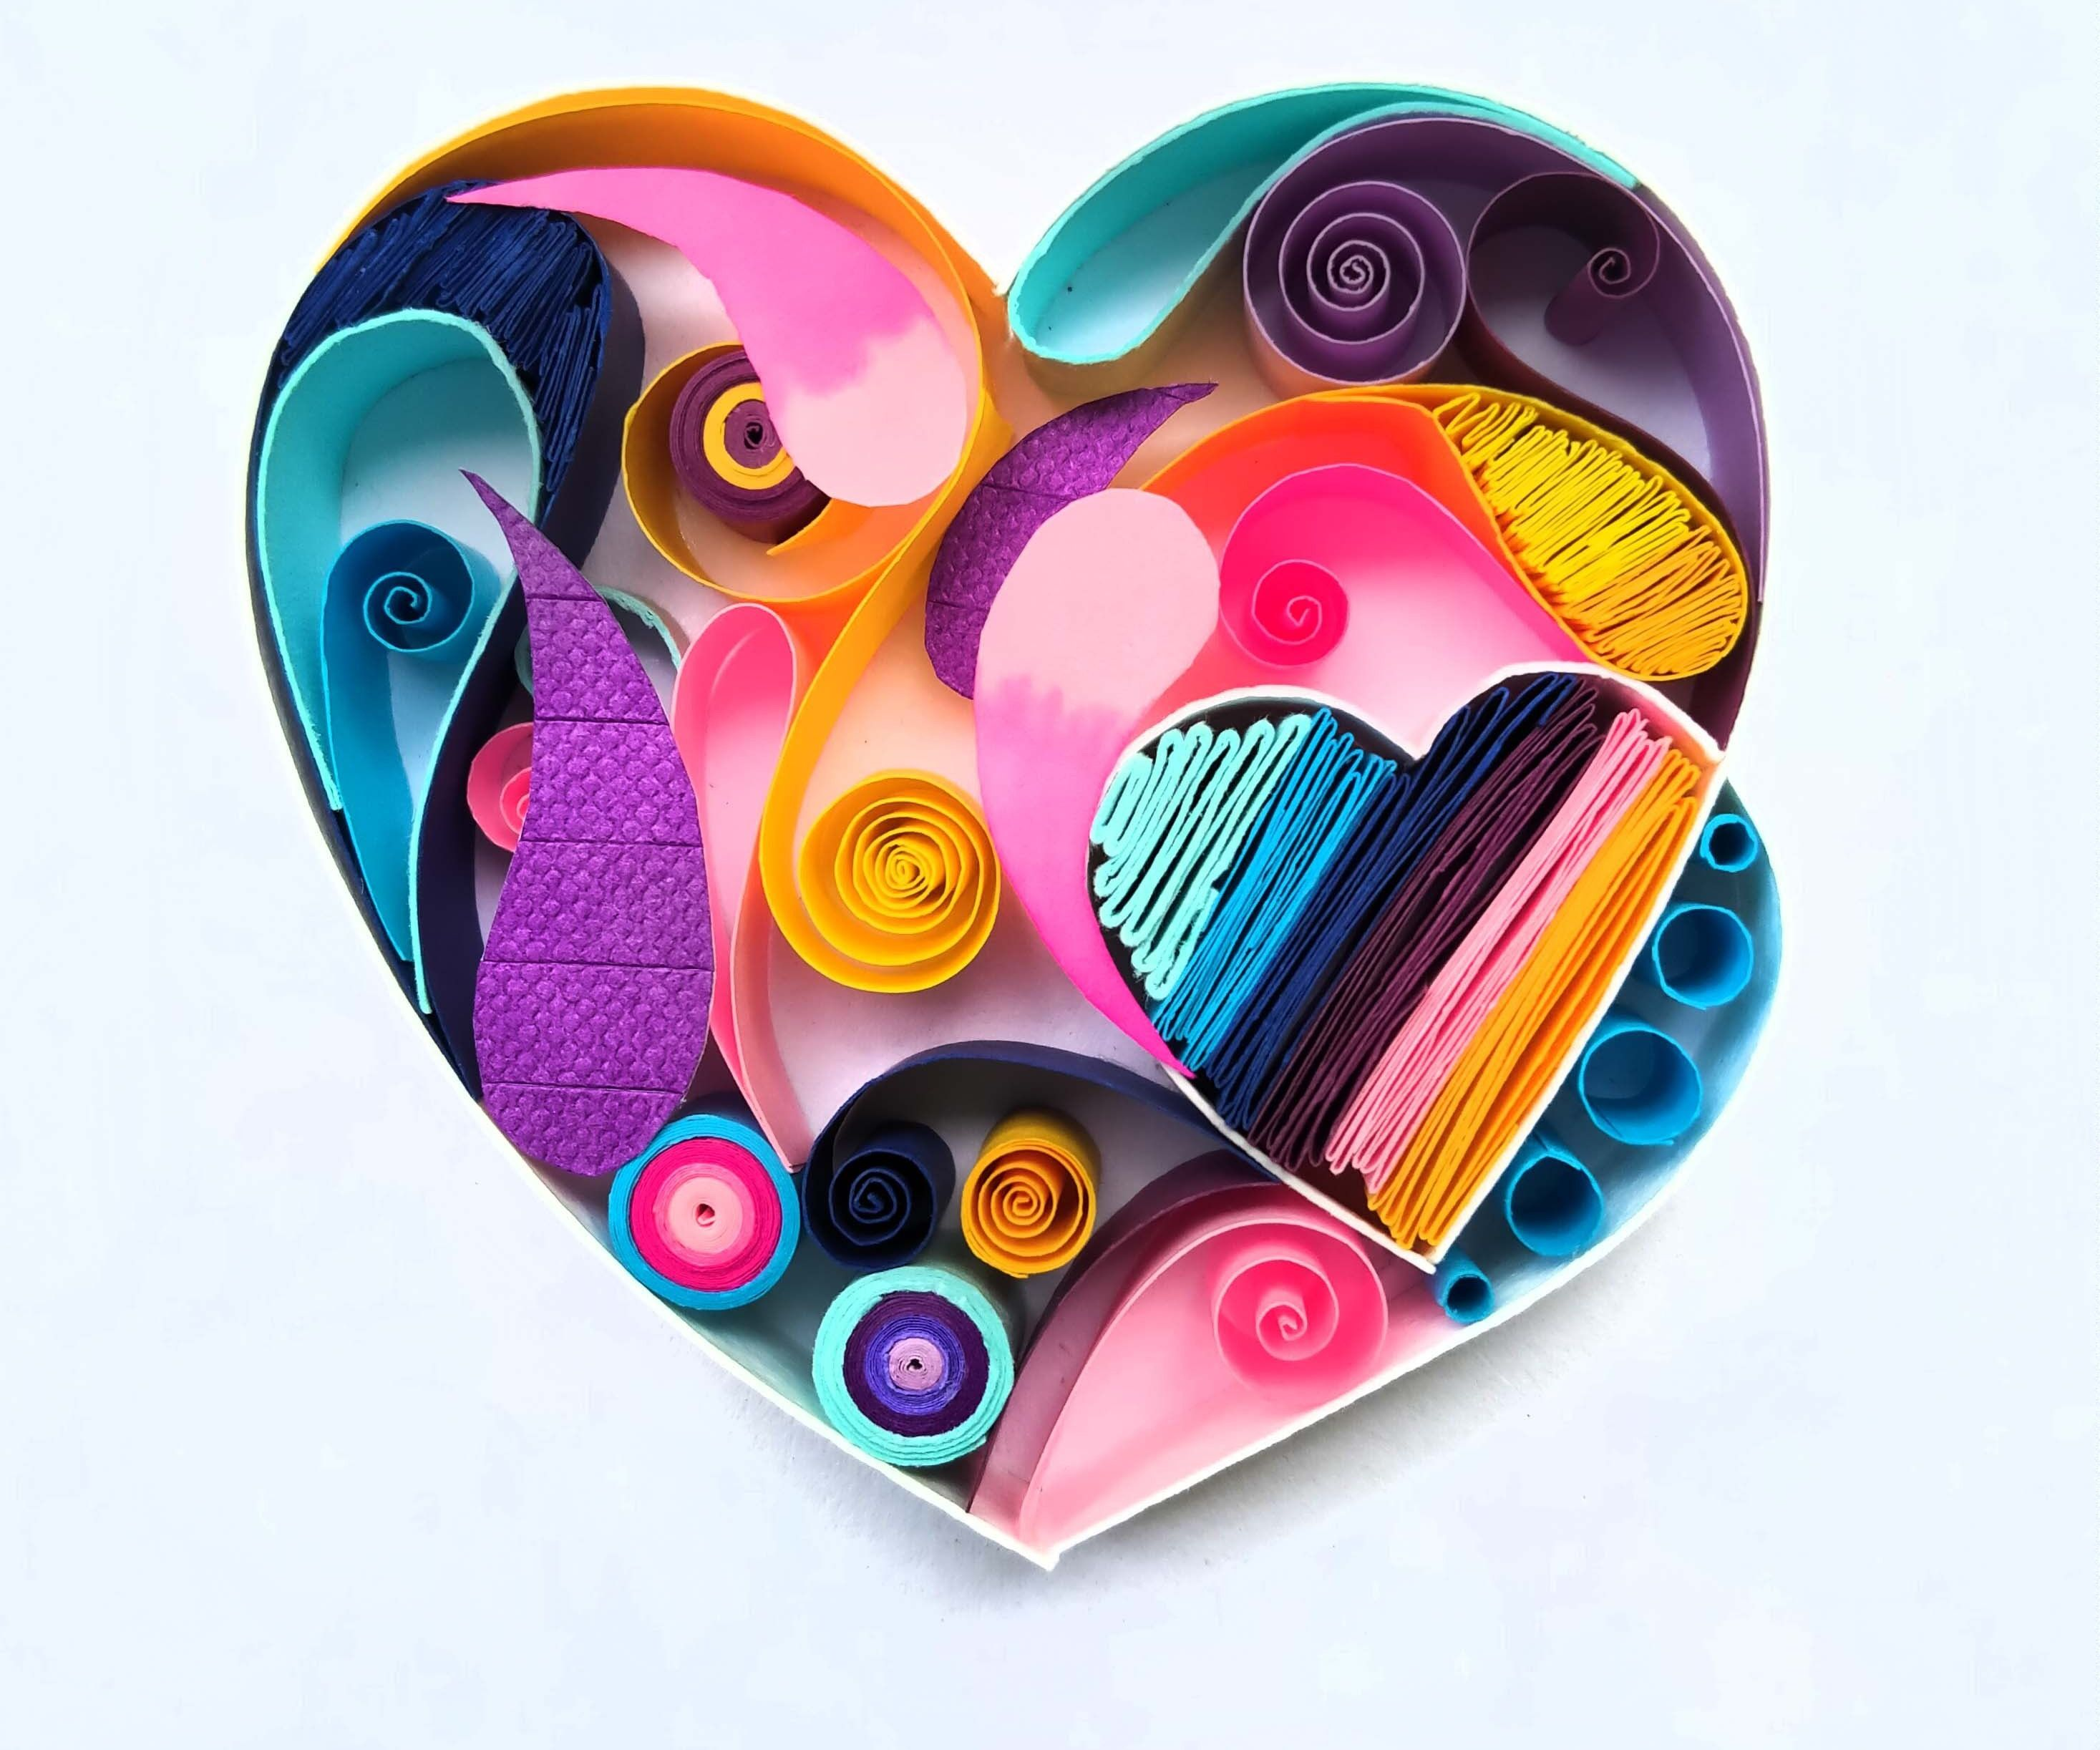 DIY Heart-shaped Paper Quilling